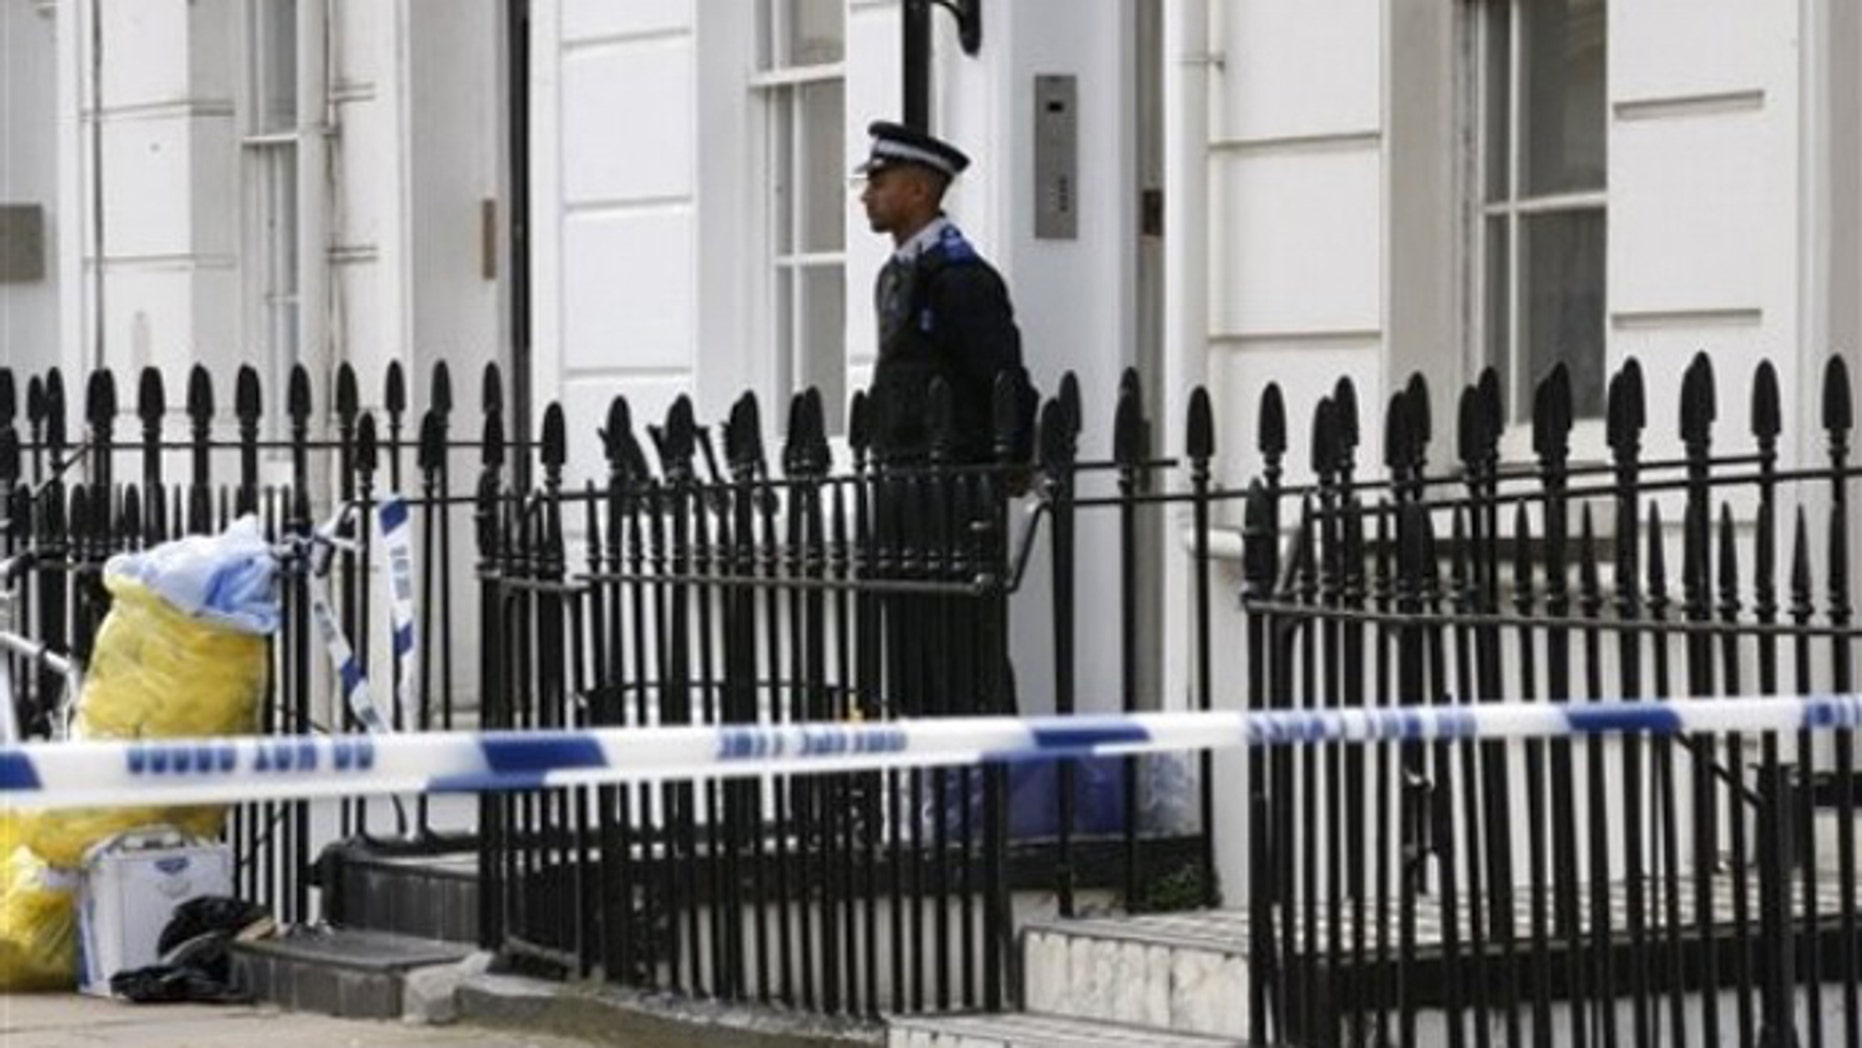 Aug. 25: A British Community Police Support Officer stands quard outside a house in central London, near the headquarters of MI6, where a man believed to be a British spy has been found dead in a flat.